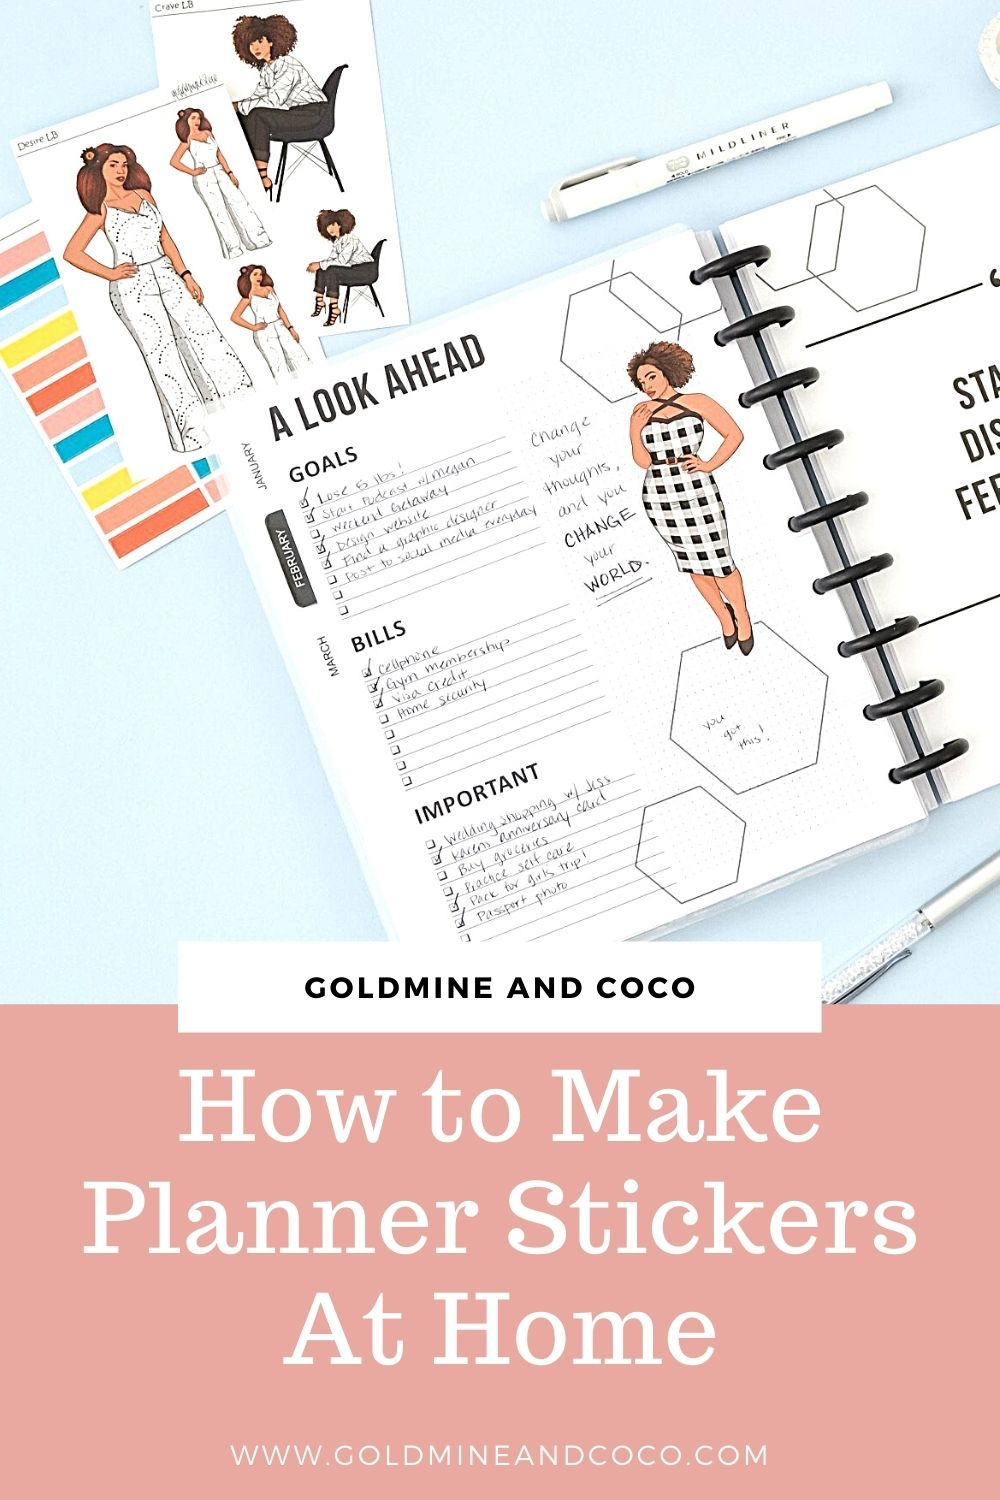 How to Make Planner Stickers By Yourself At Home